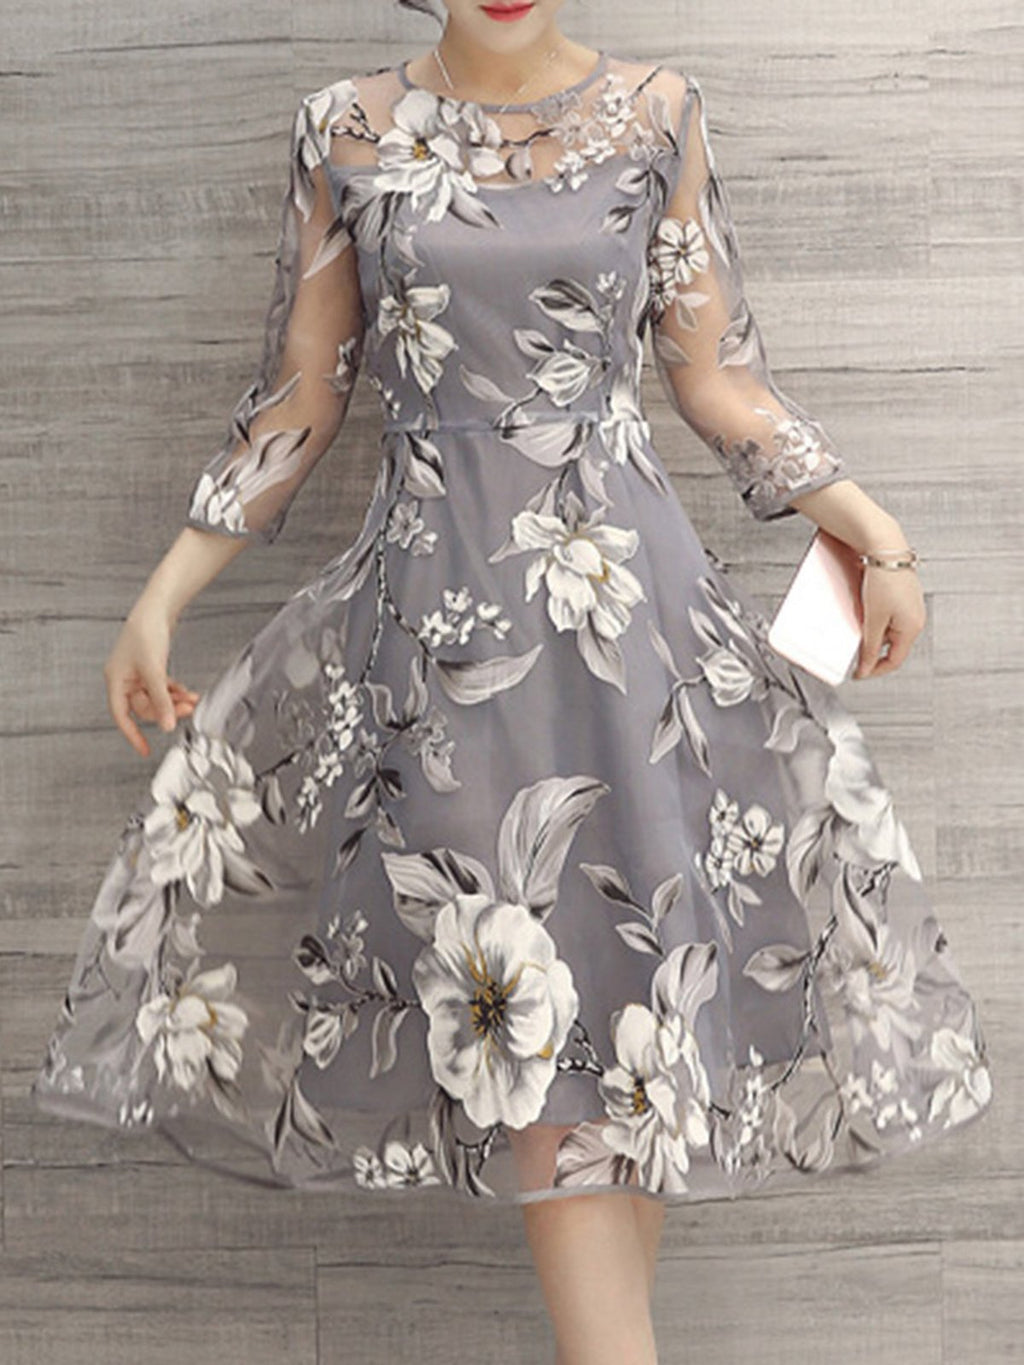 Gray A-line Women Going out 3/4 Sleeve Party Printed Floral Elegant Dress